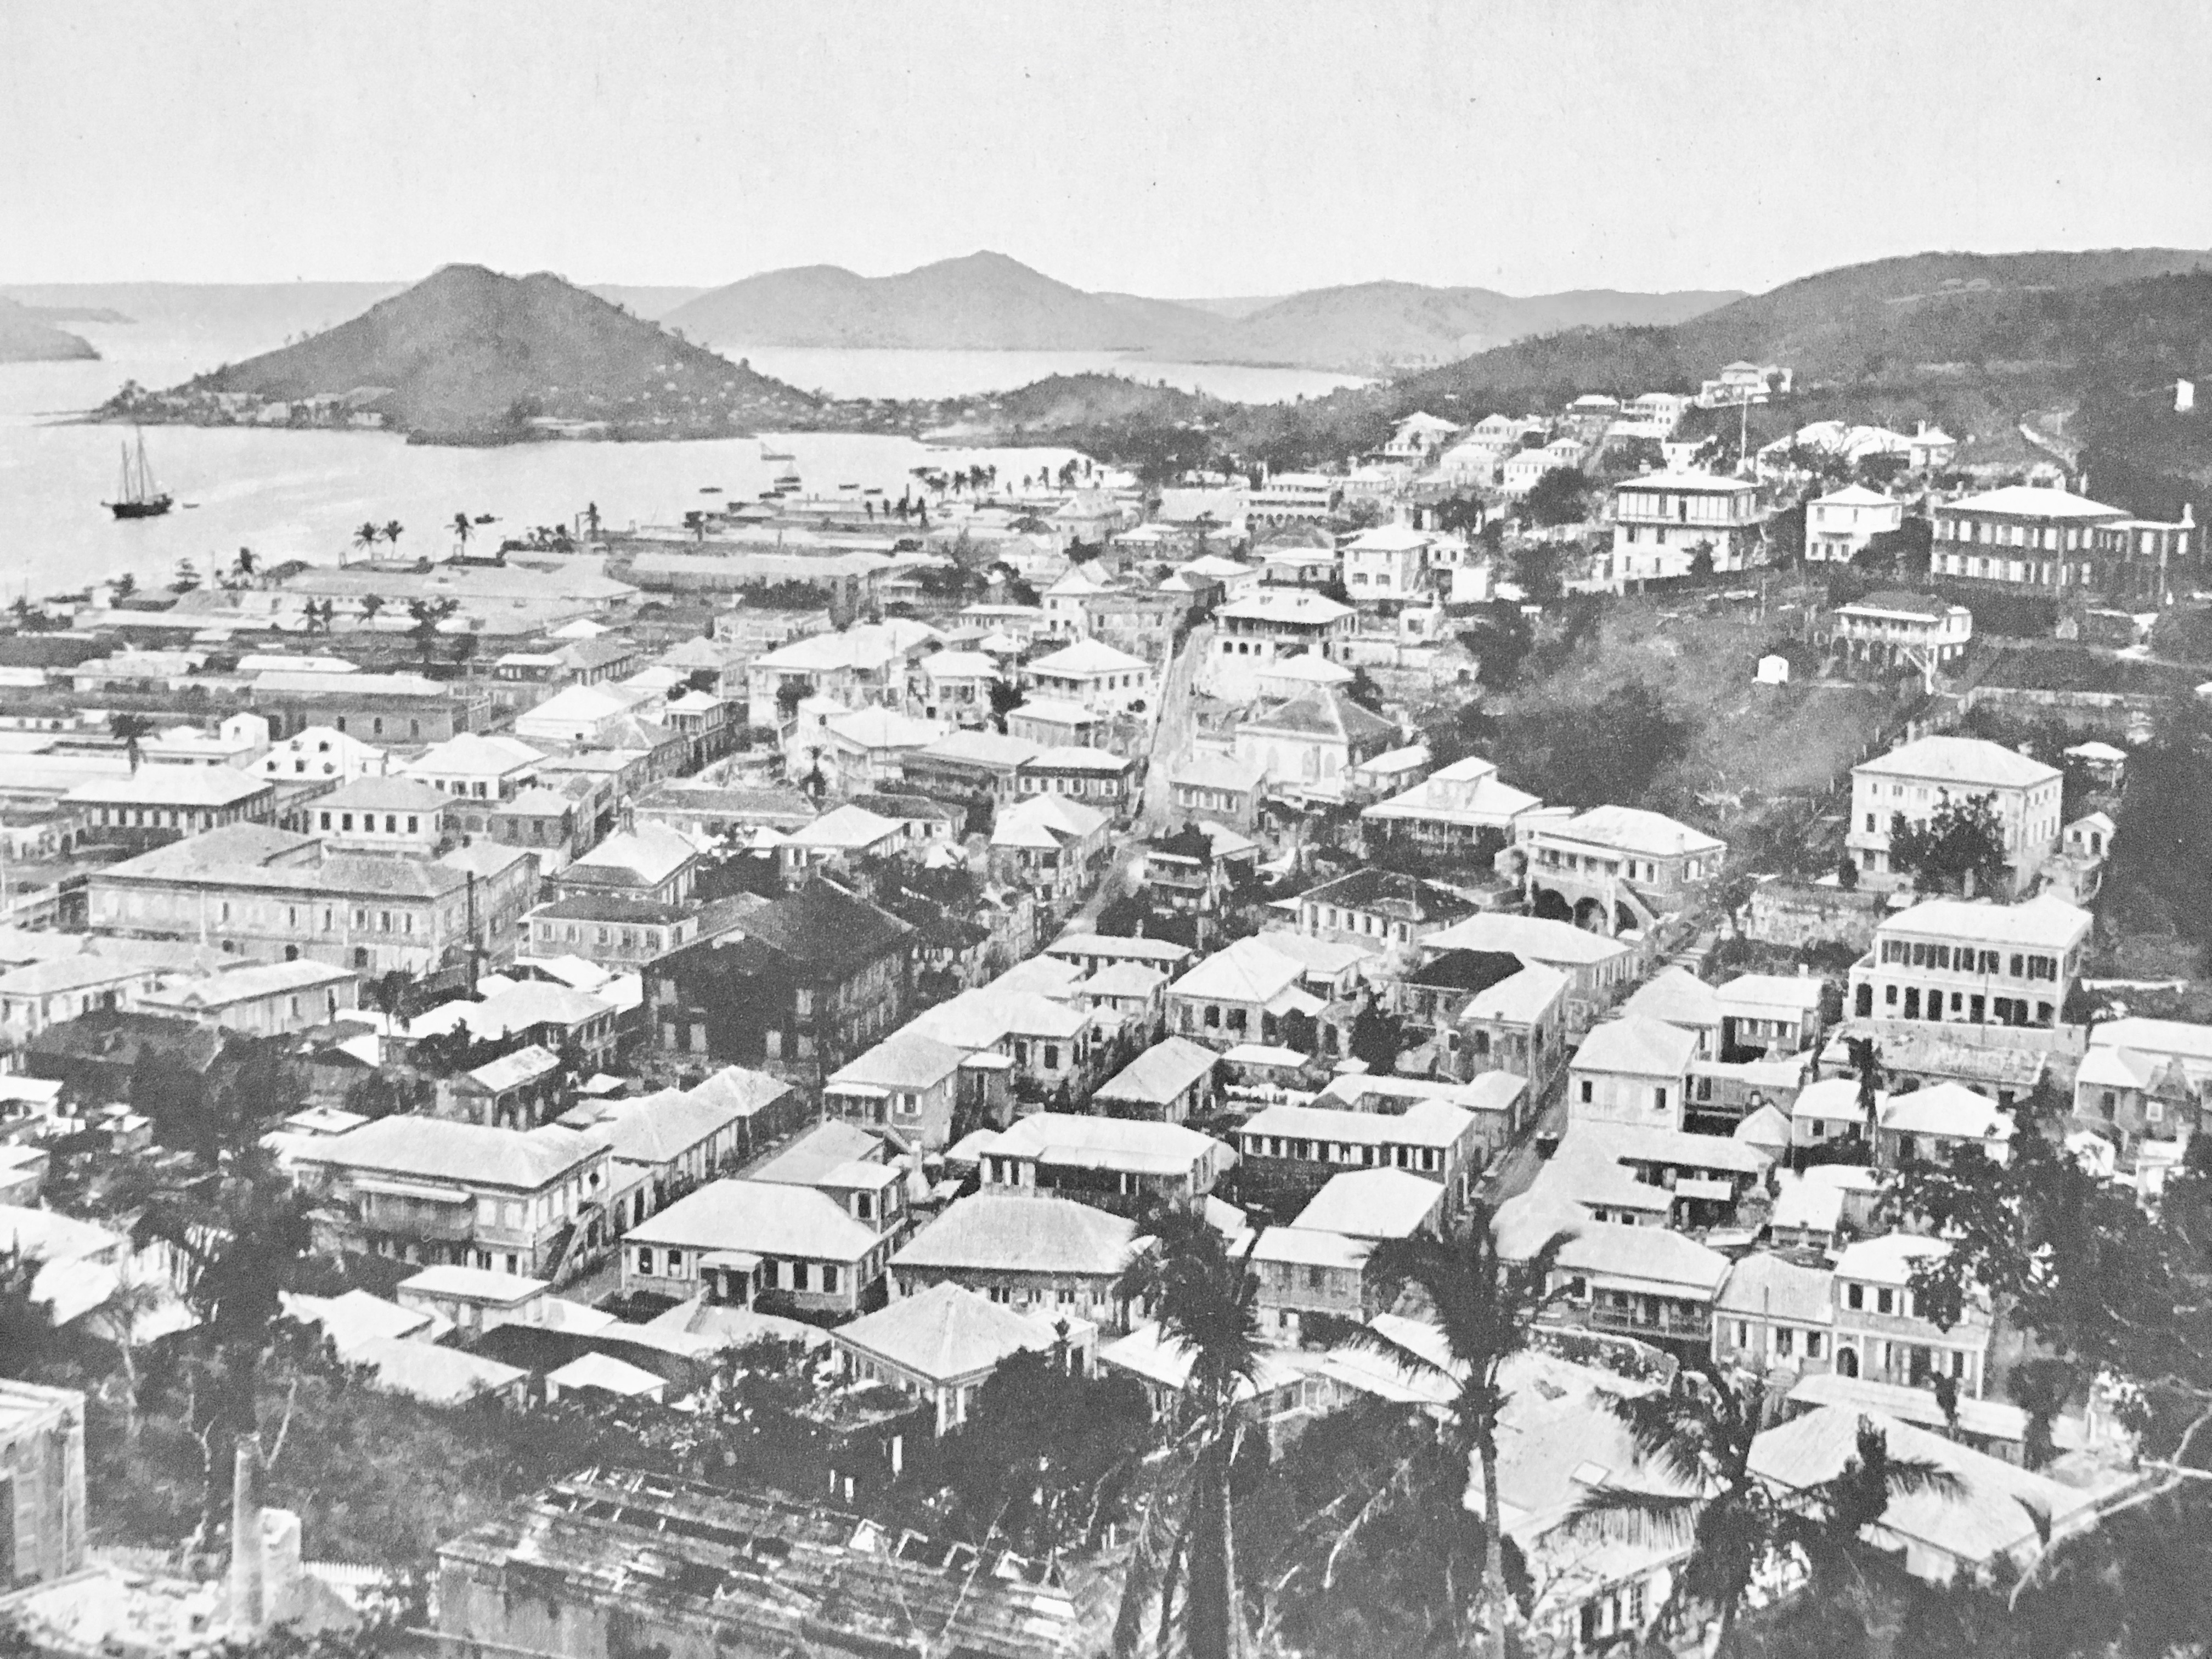 st thomas, Danish West Indies view